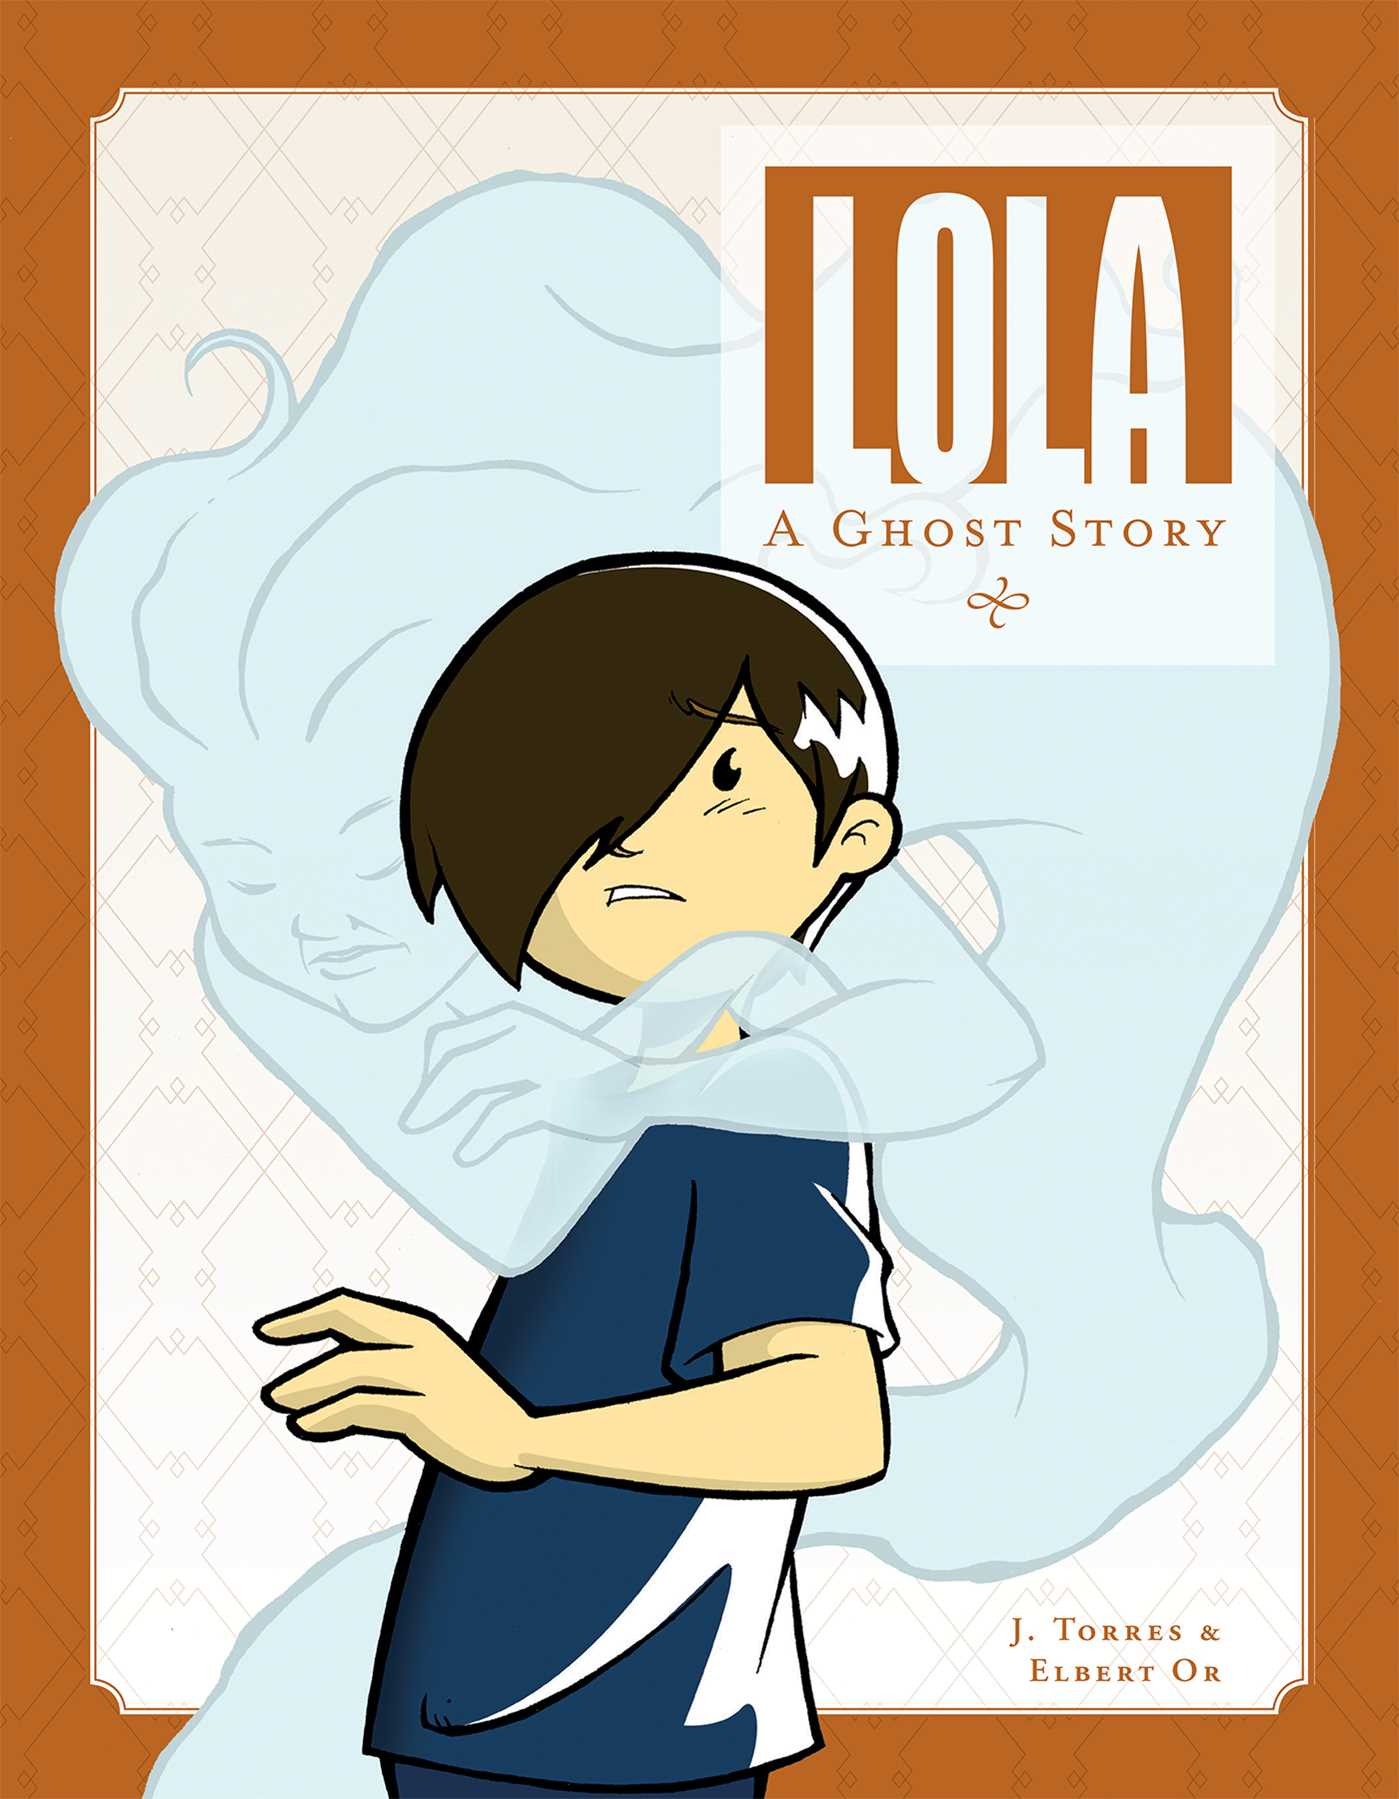 Lola: A Ghost Story, Graphic Novels, Ghost, Boy, J. Torres, Elbert Or, Jill Beaton, Sepia